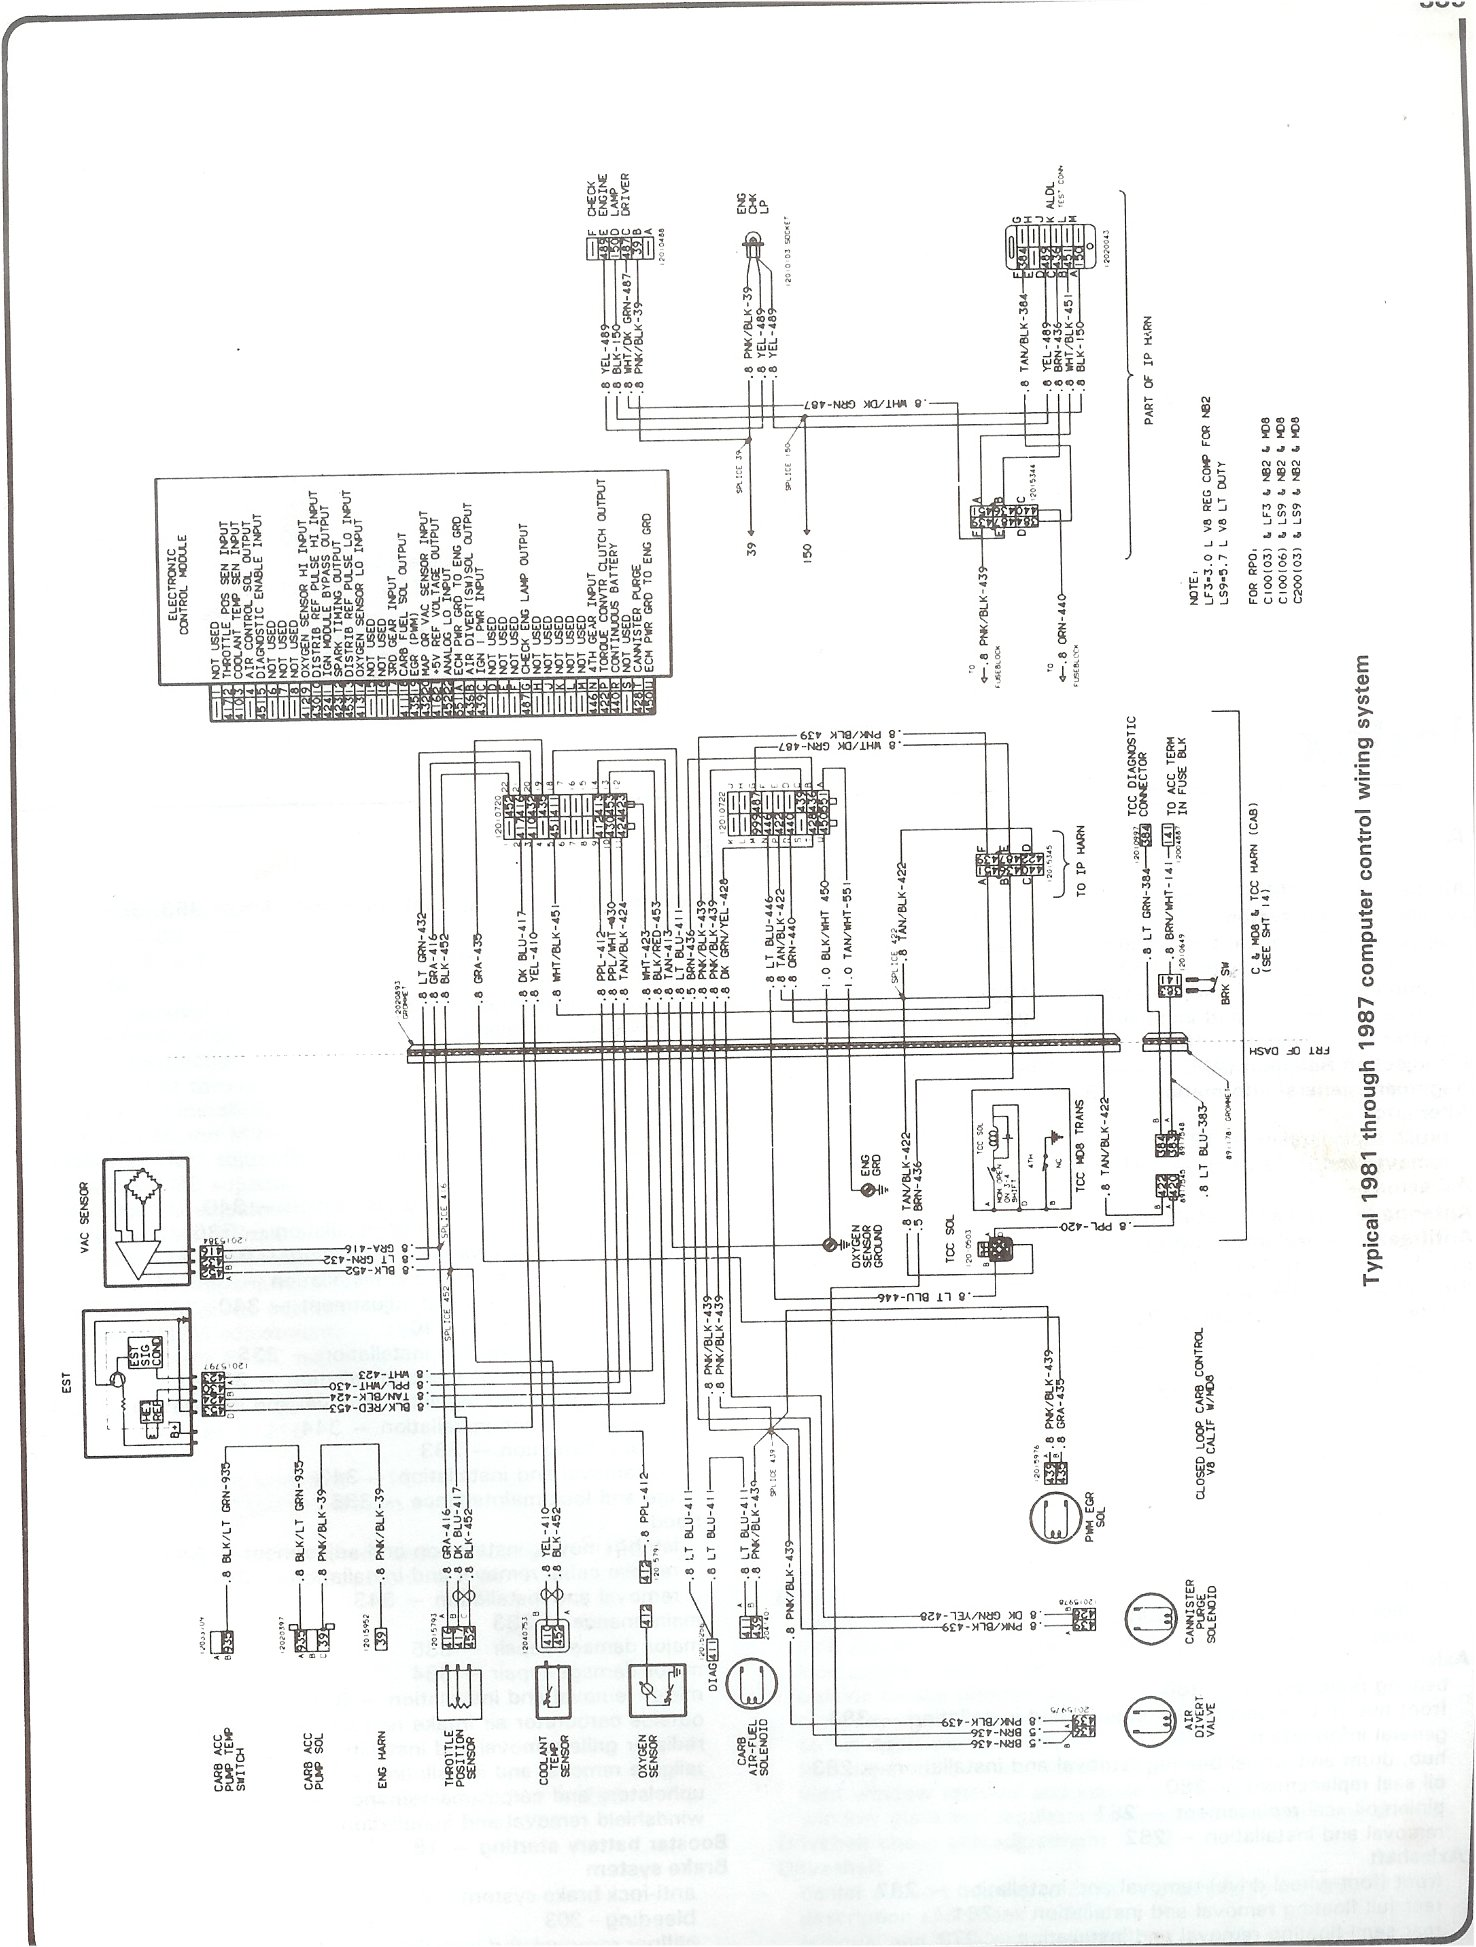 complete 73 87 wiring diagrams rh forum 73 87chevytrucks com wiring diagram for chevy trailer plug wiring for chevy cobalt 2005